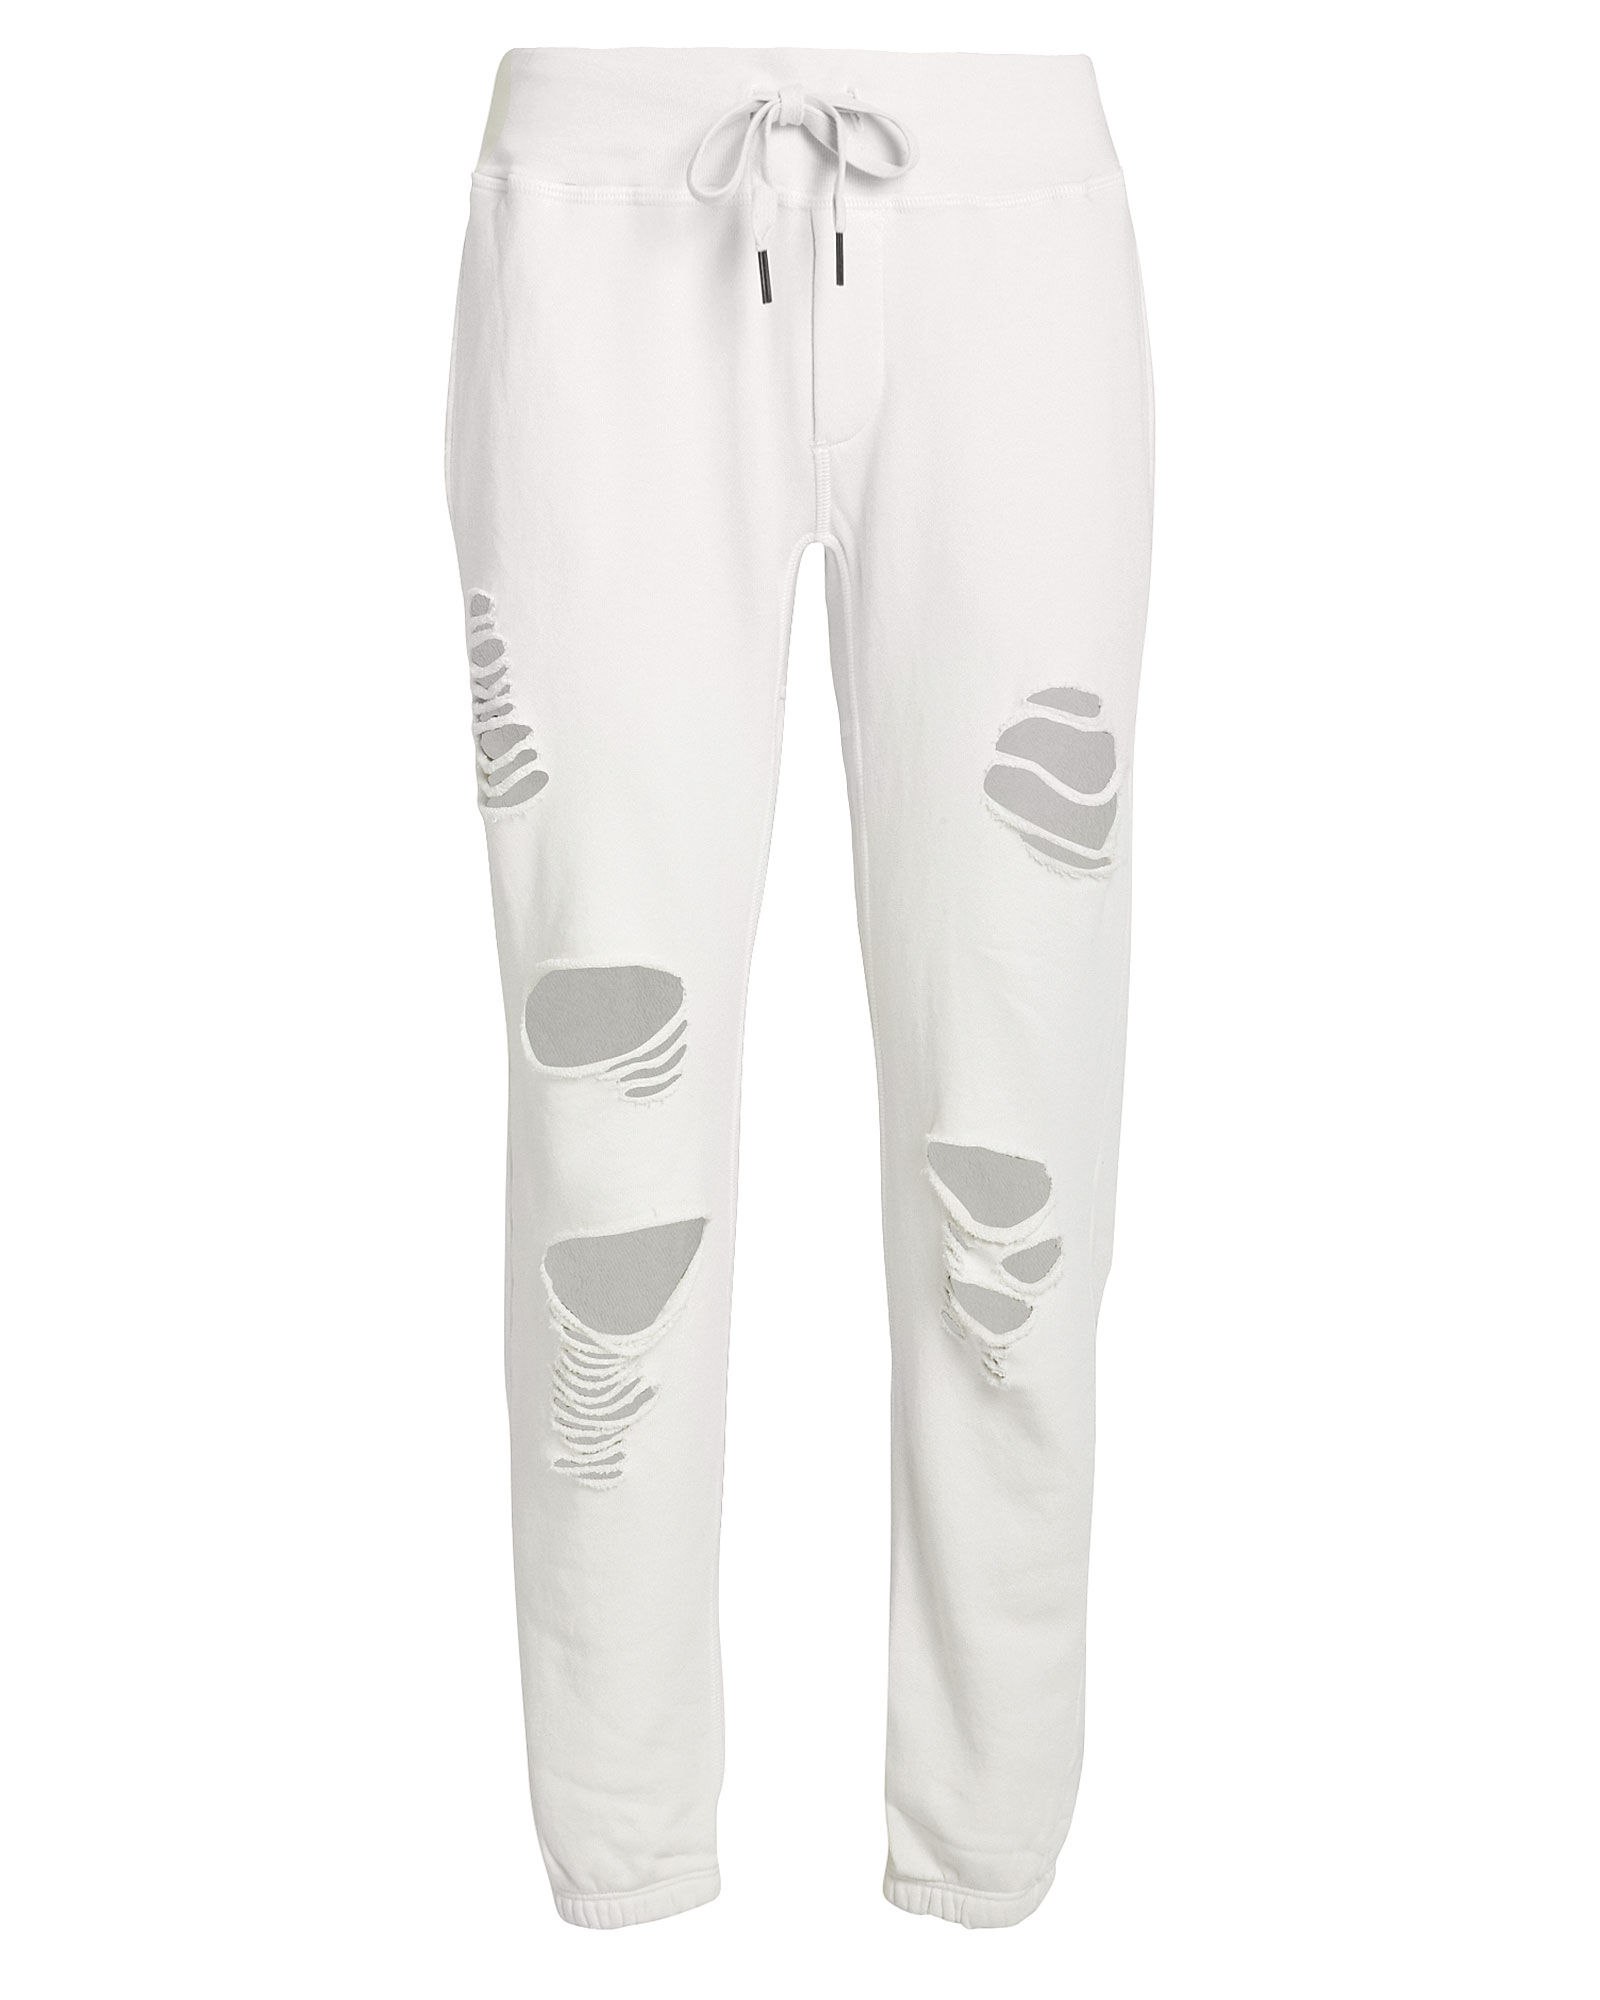 Sayde Distressed French Terry Sweatpants, IVORY, hi-res